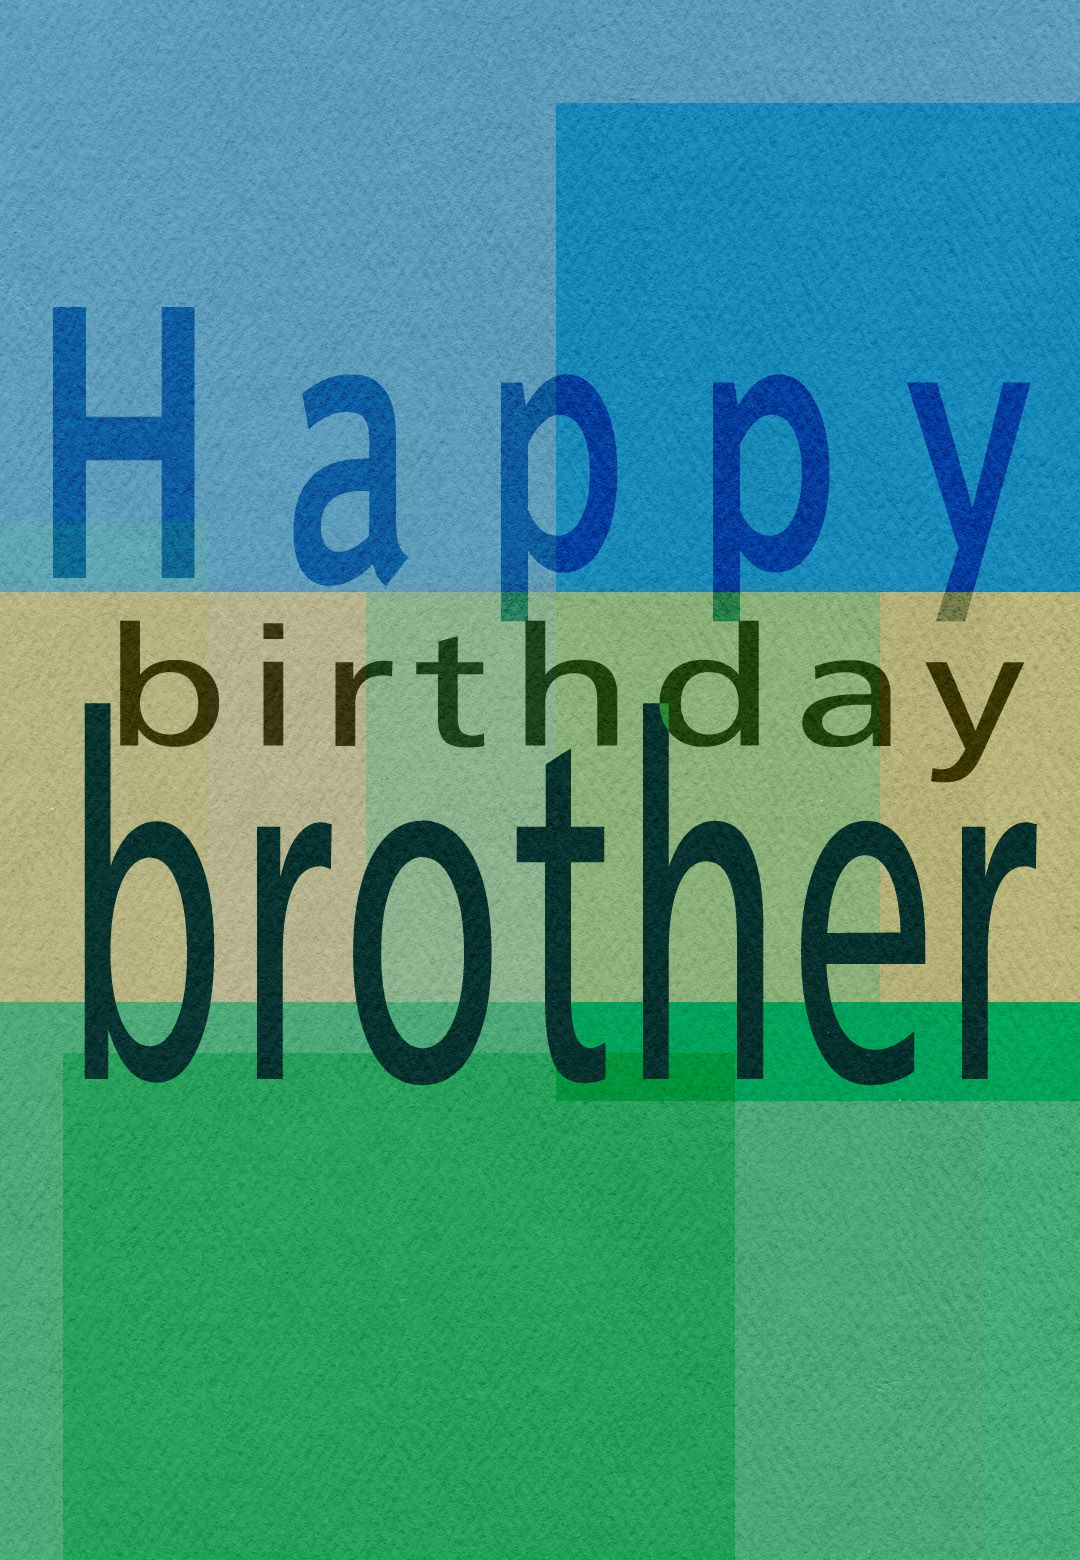 Free Printable Greeting Cards | Gift Ideas | Pinterest | Birthday - Free Printable Birthday Cards For Brother